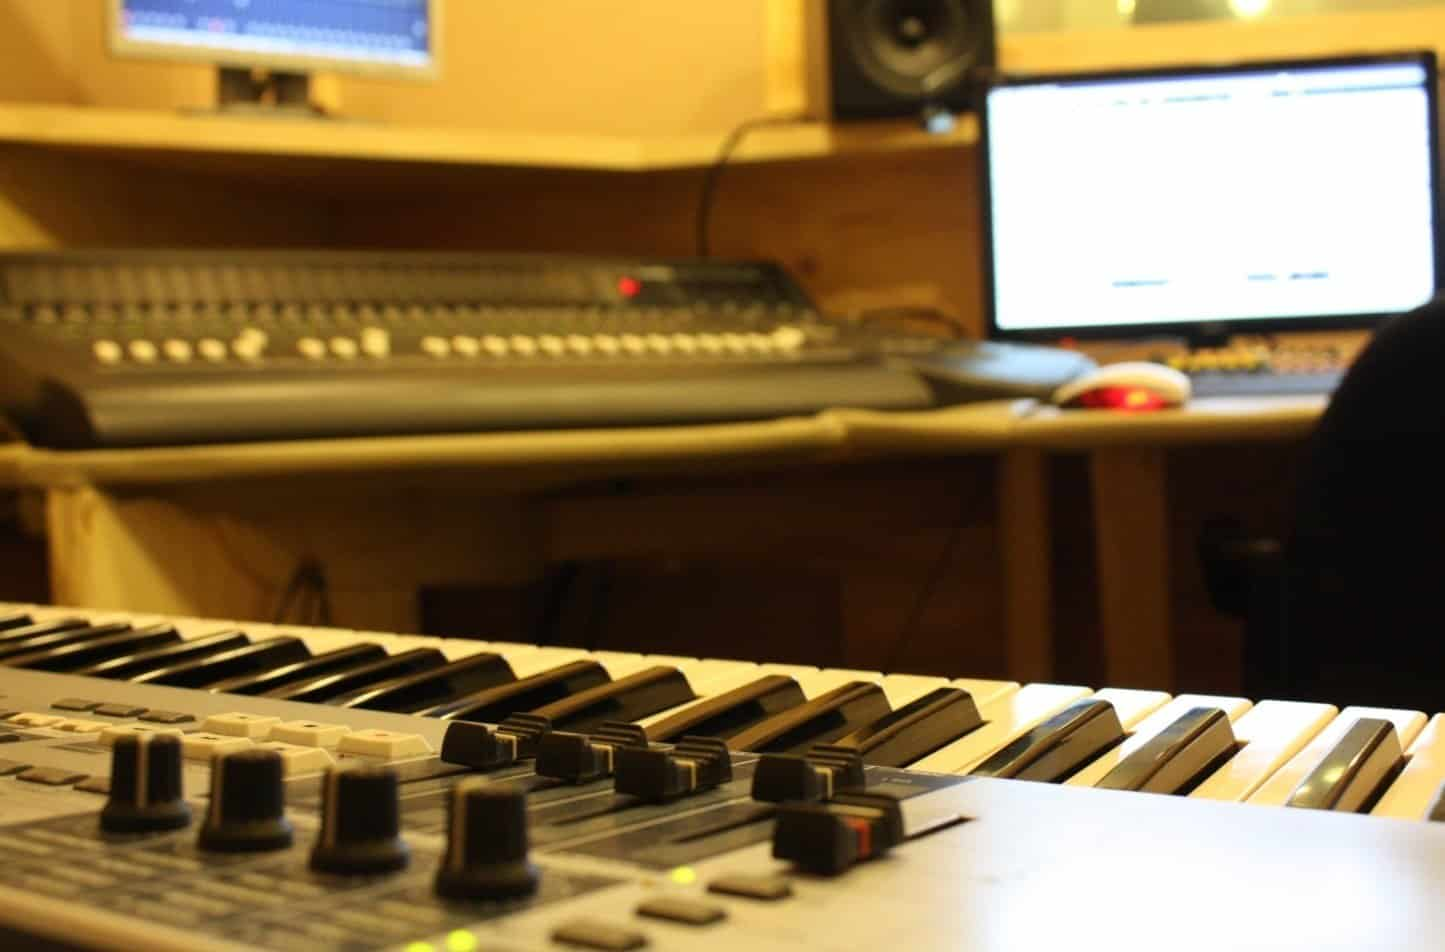 Best Studio Monitors for Digital Piano